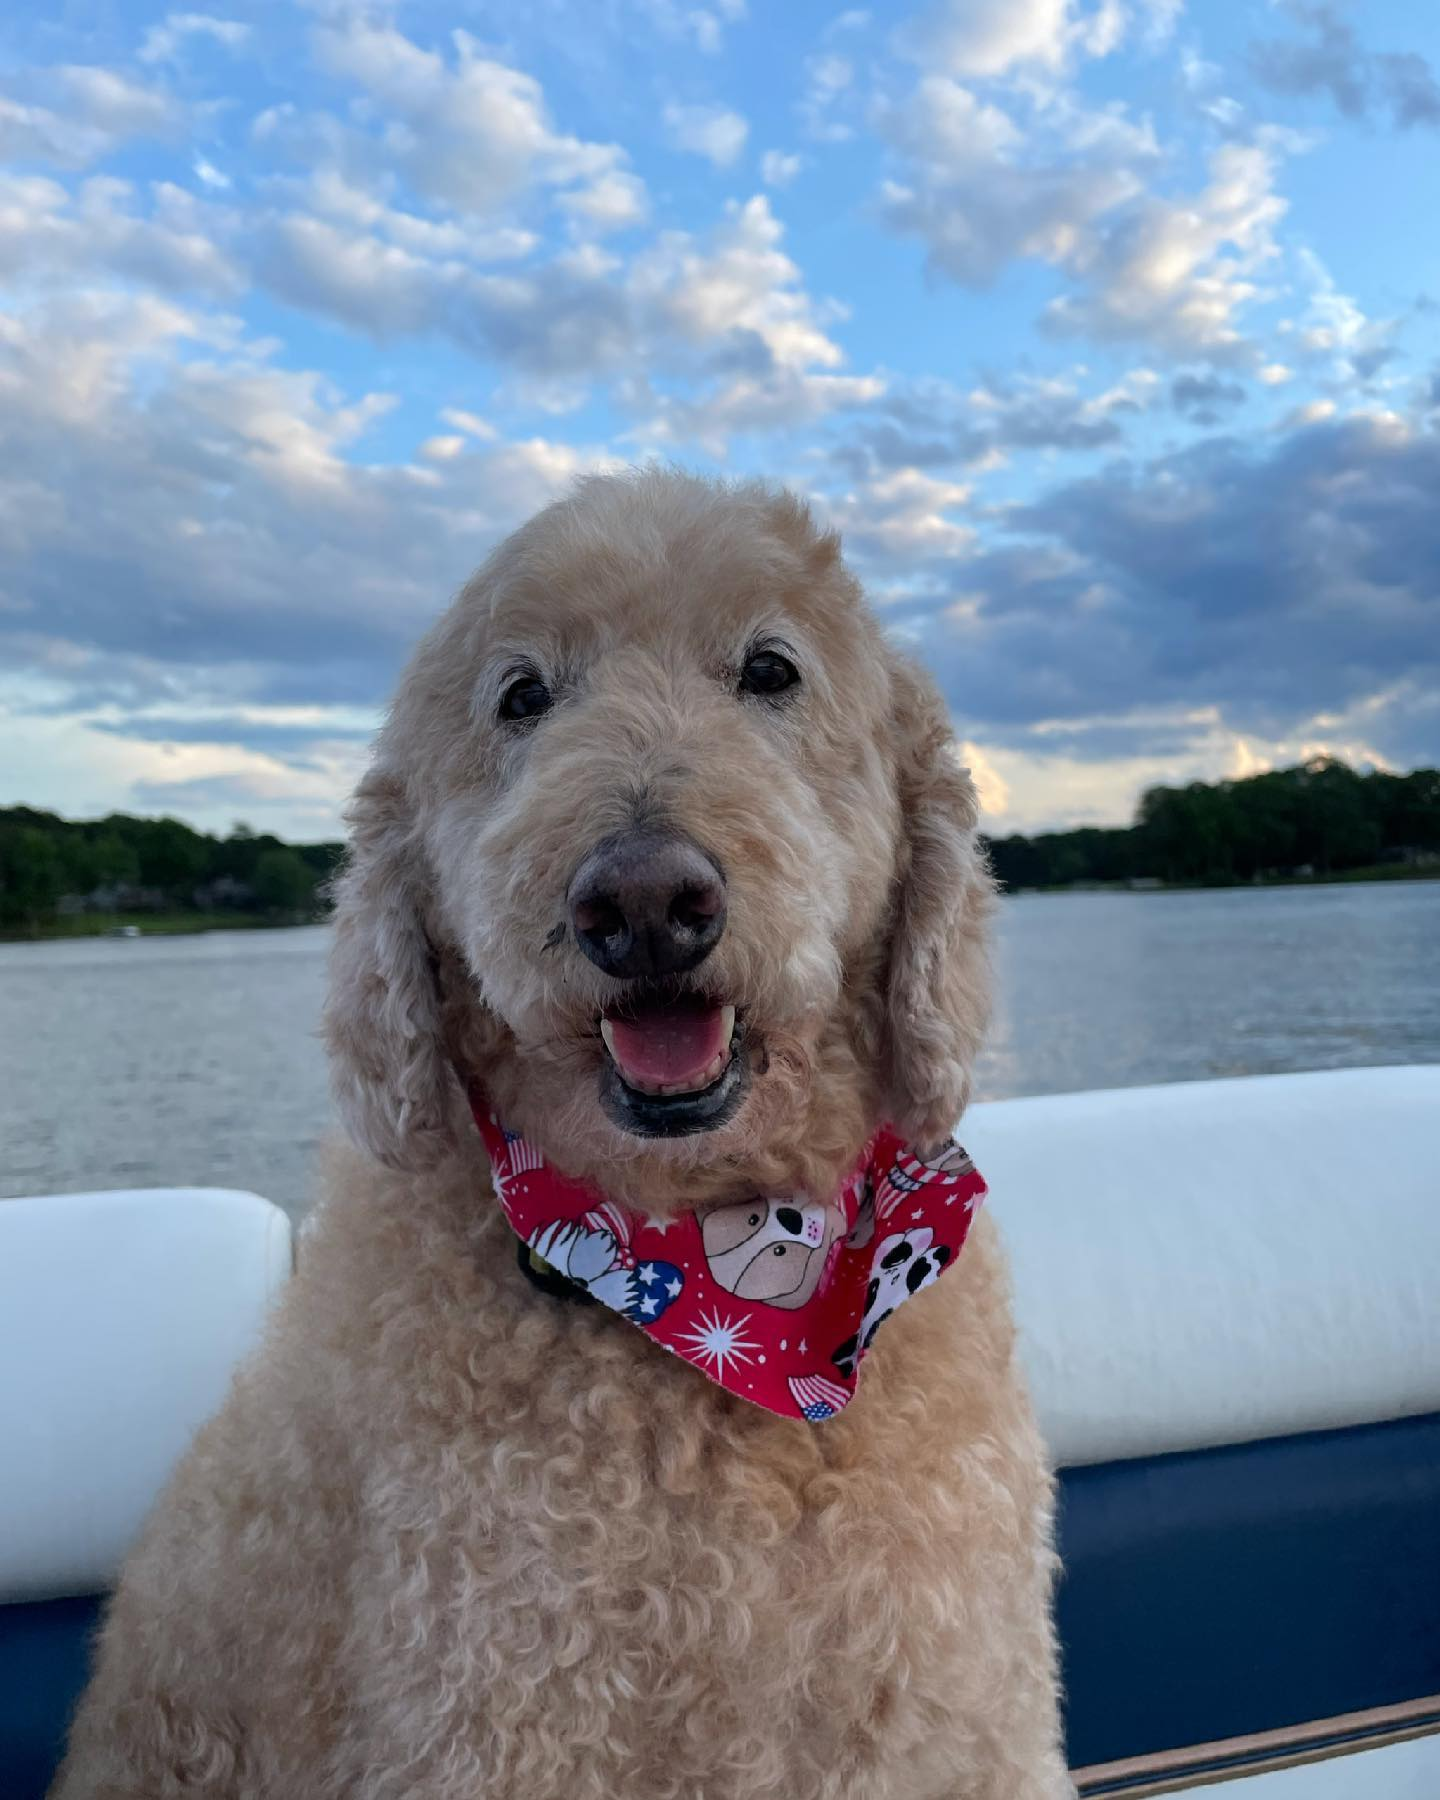 Happy July 4th from our fluffy friends!✨🎇🇺🇸 #july4th #goldendoodlesofinstagram #lakelife